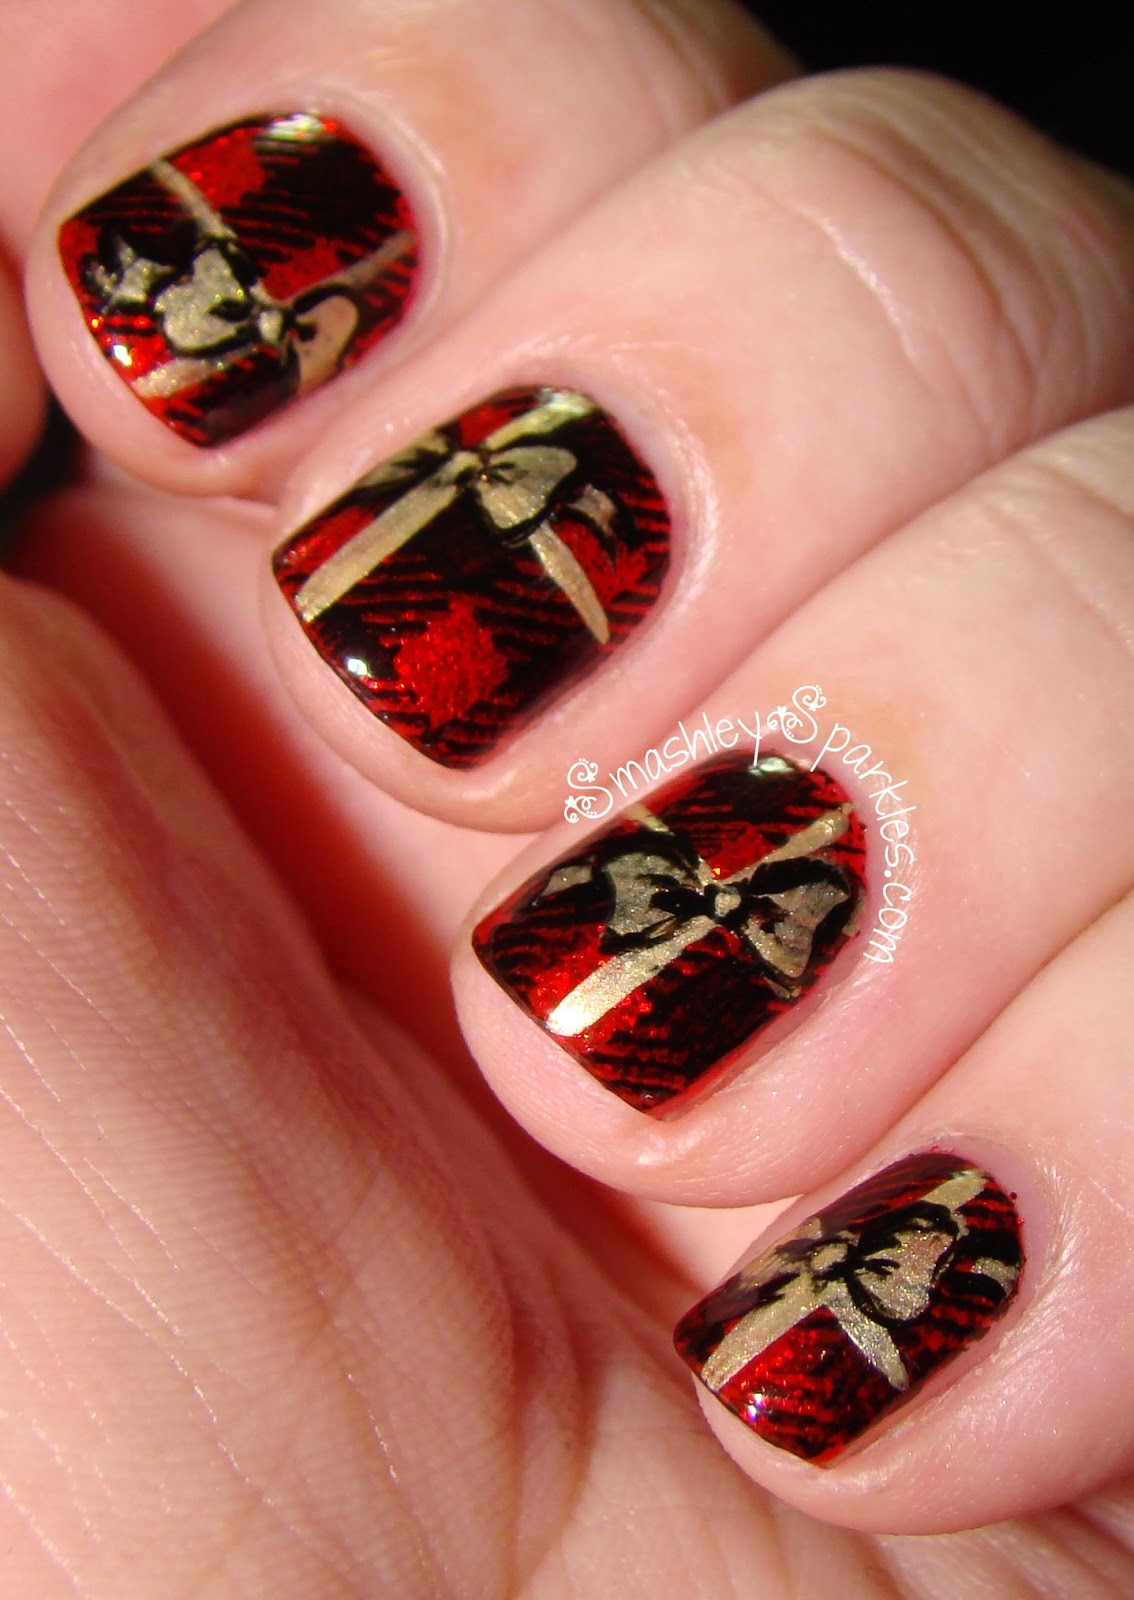 Smashley Sparkles: Holiday Nail Art Challenge: Day 4, Presents and